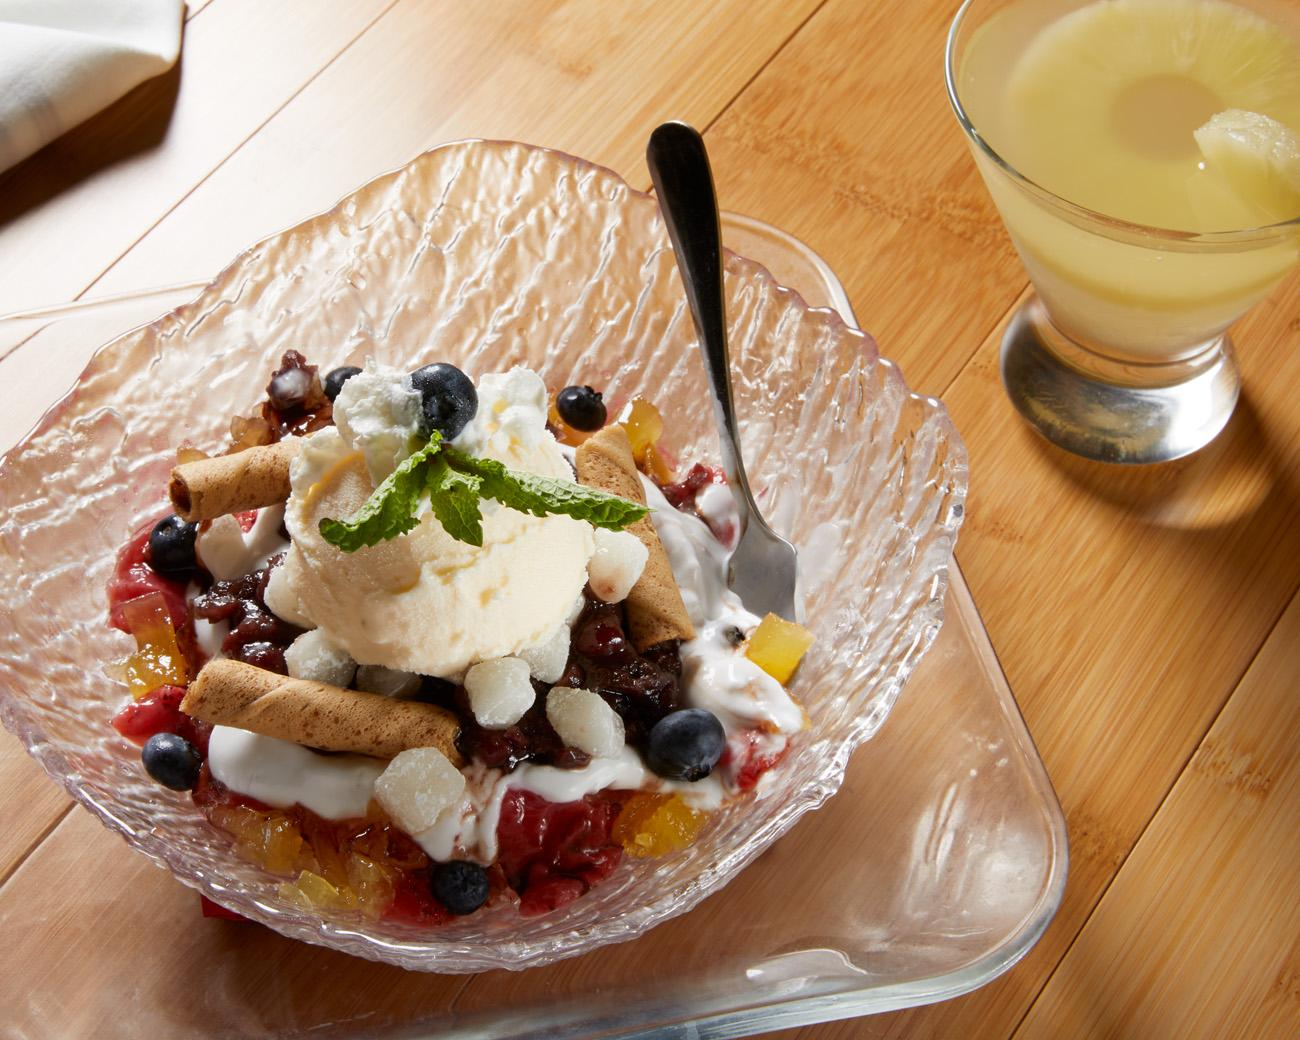 Patbingsu, a traditional Korean dessert / Image: Marlene Rounds // Published 9.18.18